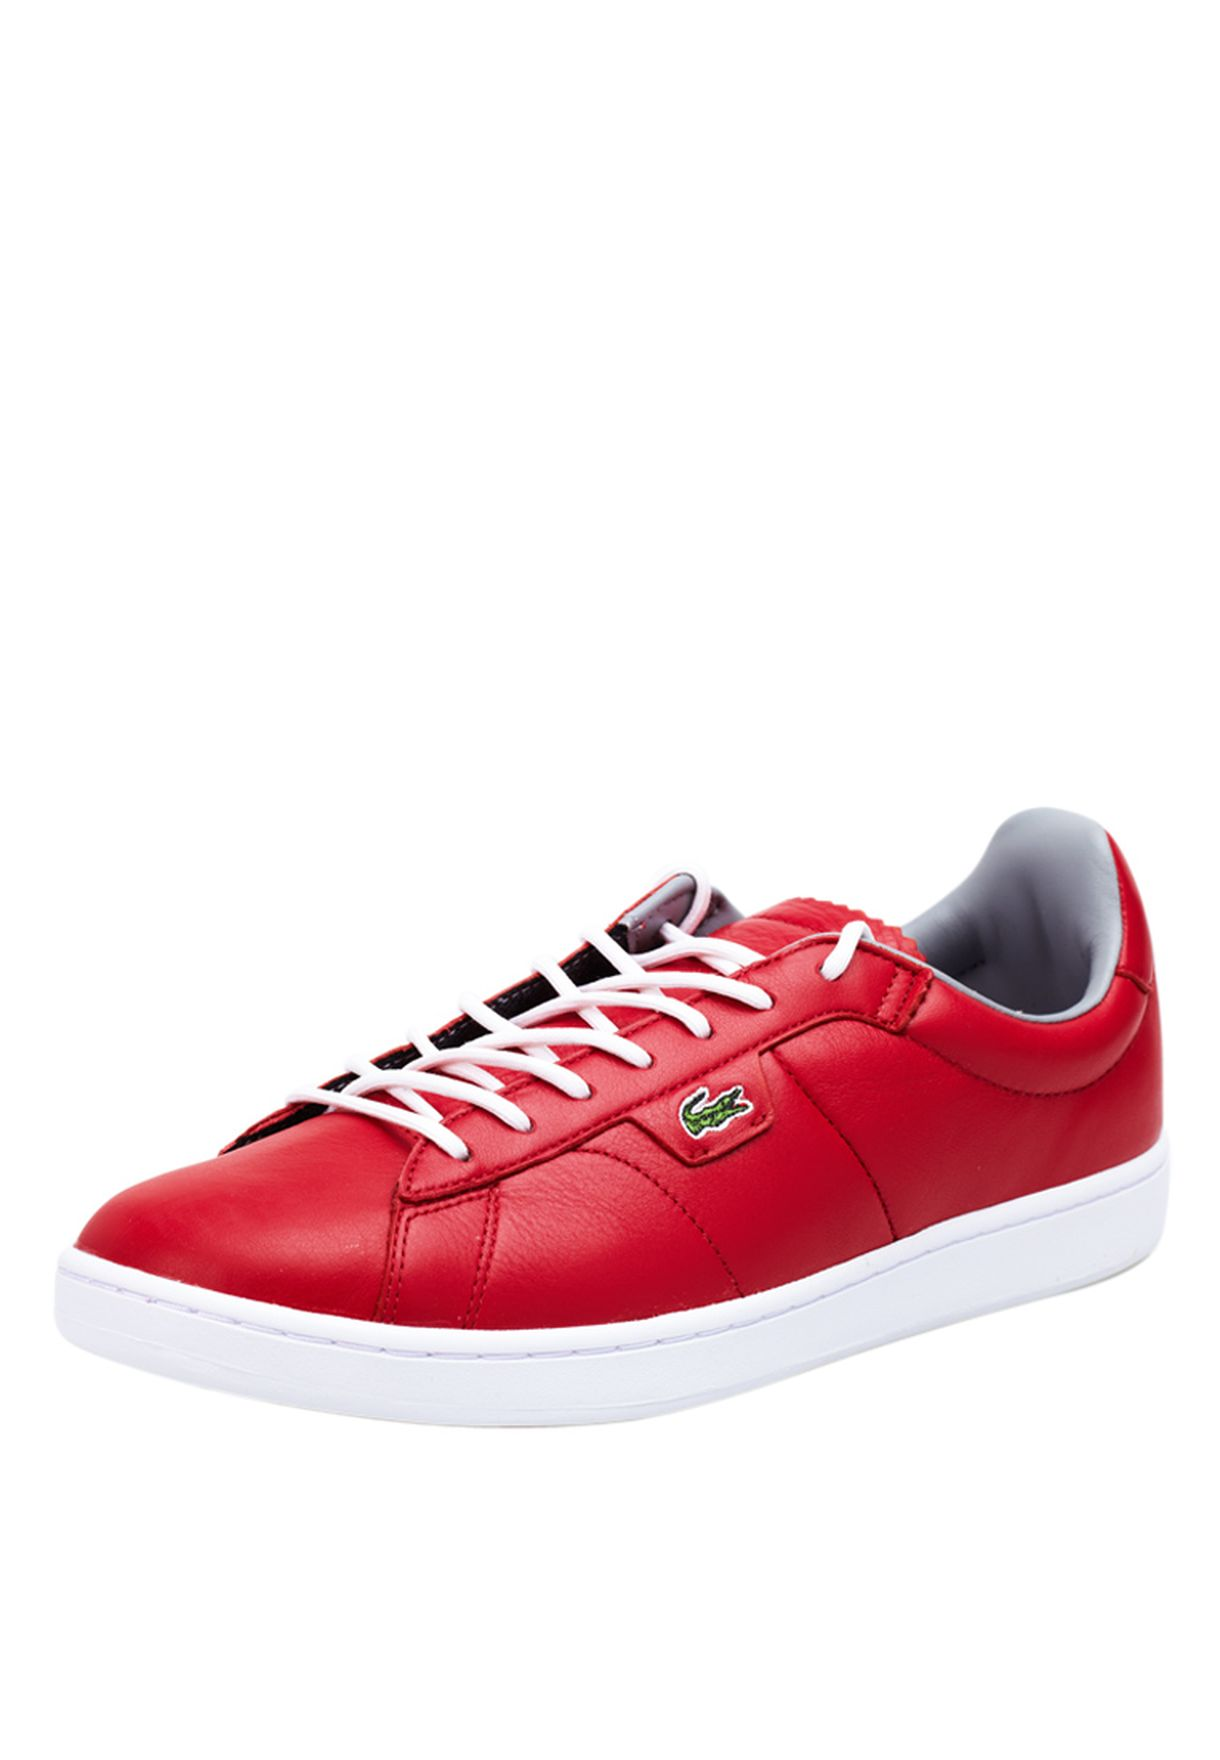 a184e4a670a9 Shop lacoste red broadwick lowtop sneakers lem for men jpg 1220x1760 Lacoste  red shoes